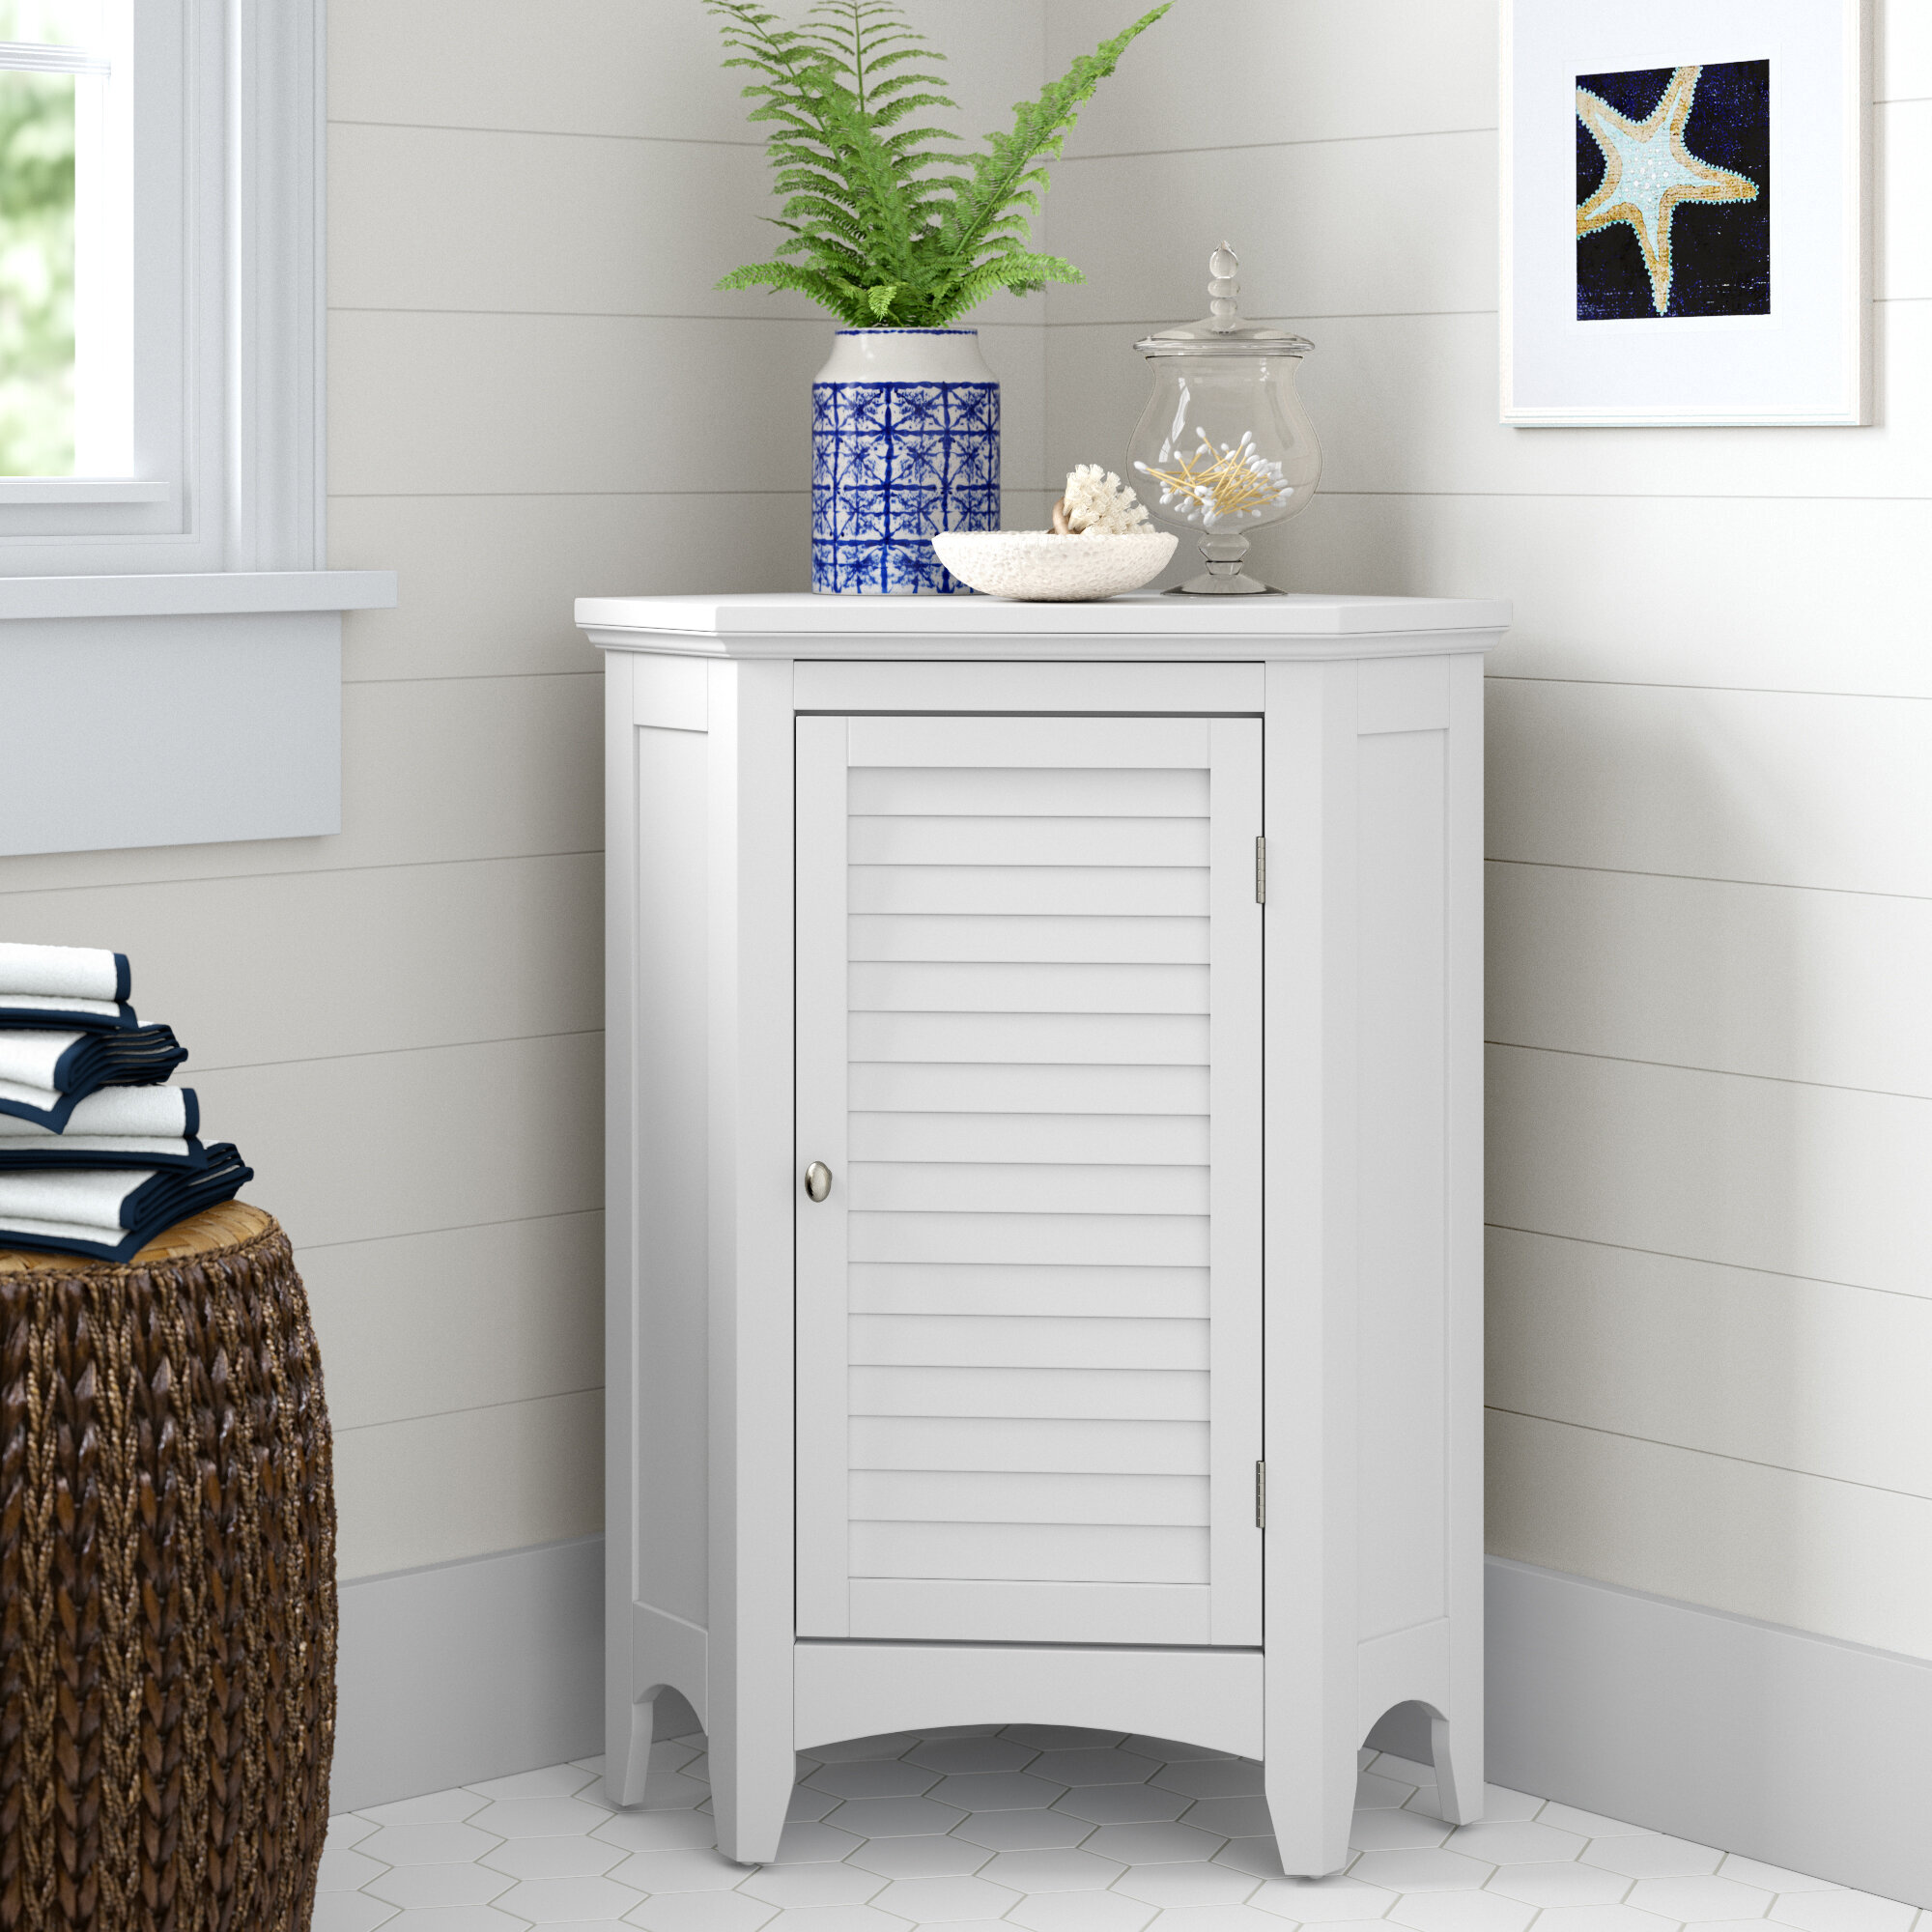 Coastal Farmhouse Billy 24 75 W X 32 H X 17 D Free Standing Bathroom Cabinet Reviews Wayfair